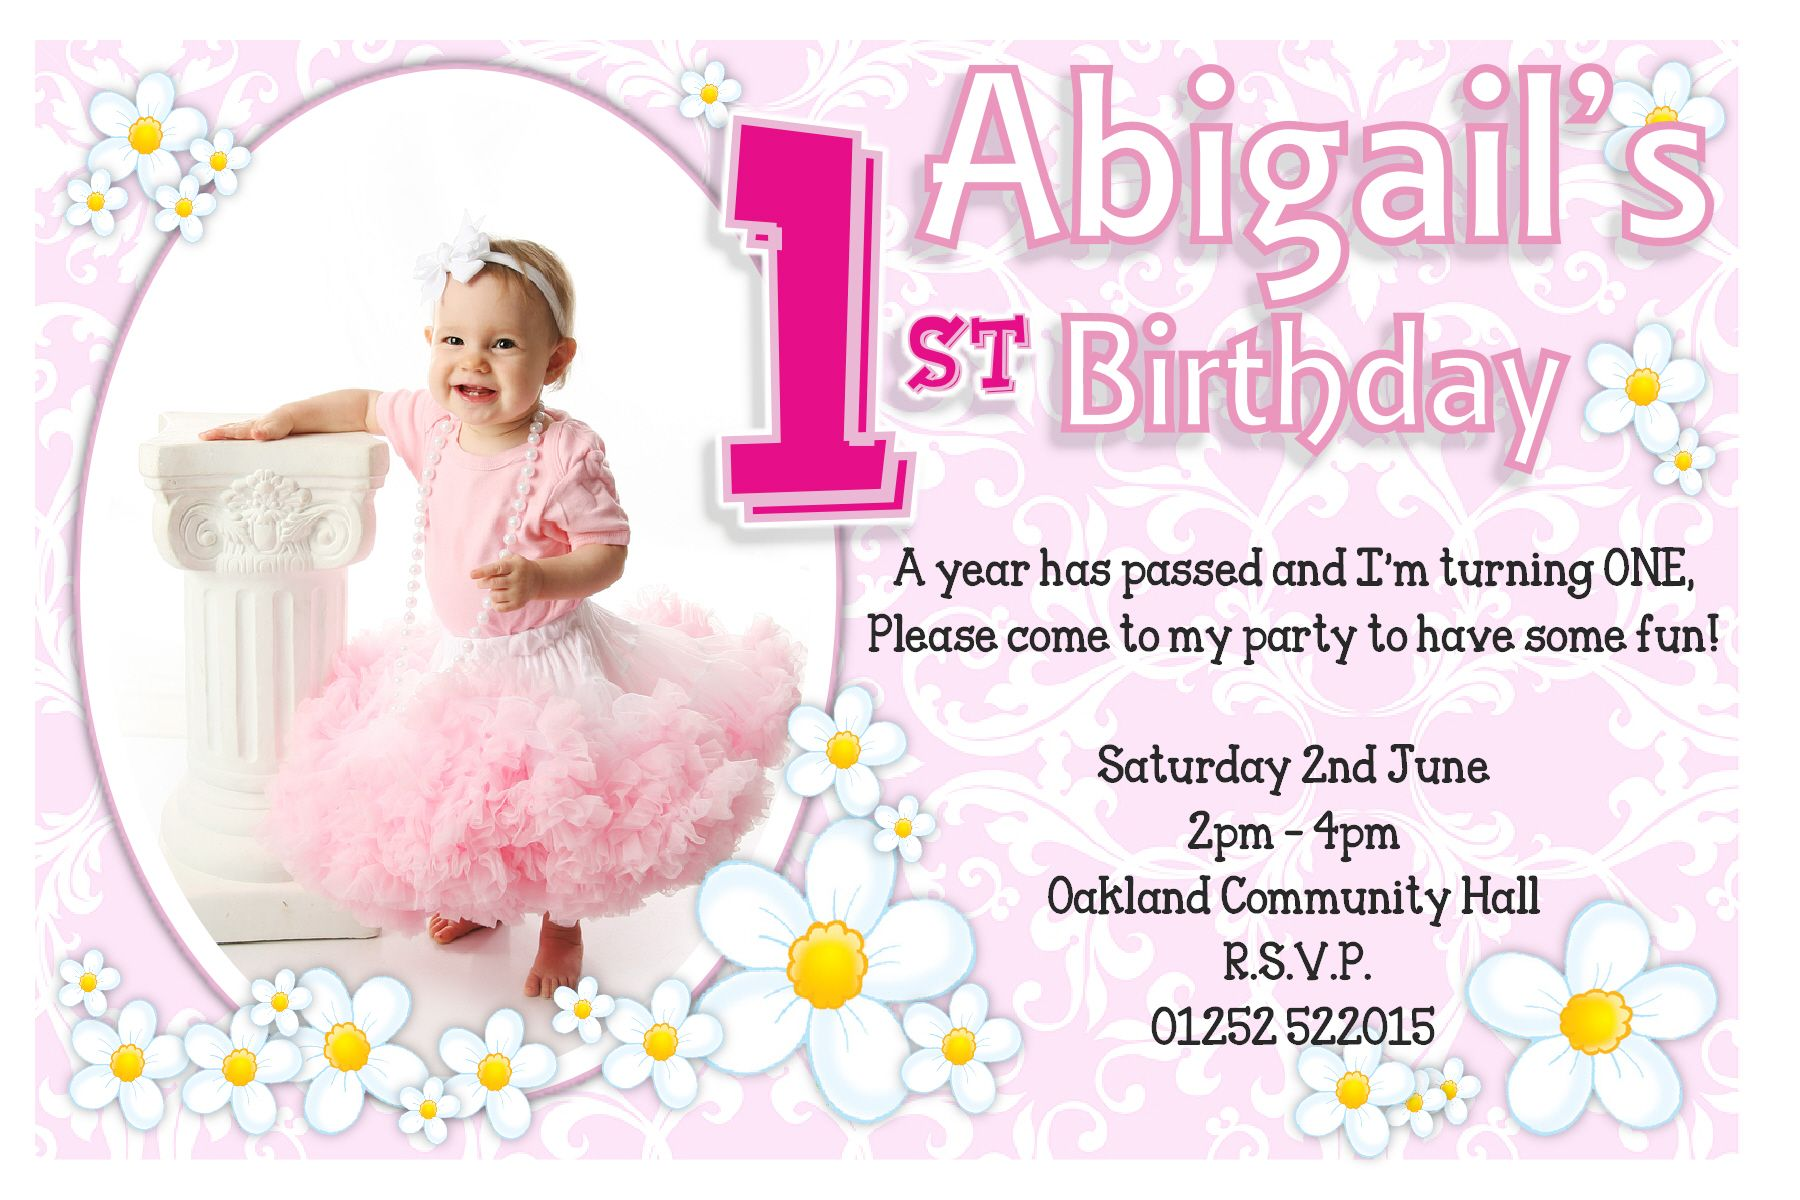 1st Birthday Invitations Ideas For Girl – Bagvania FREE Printable ...